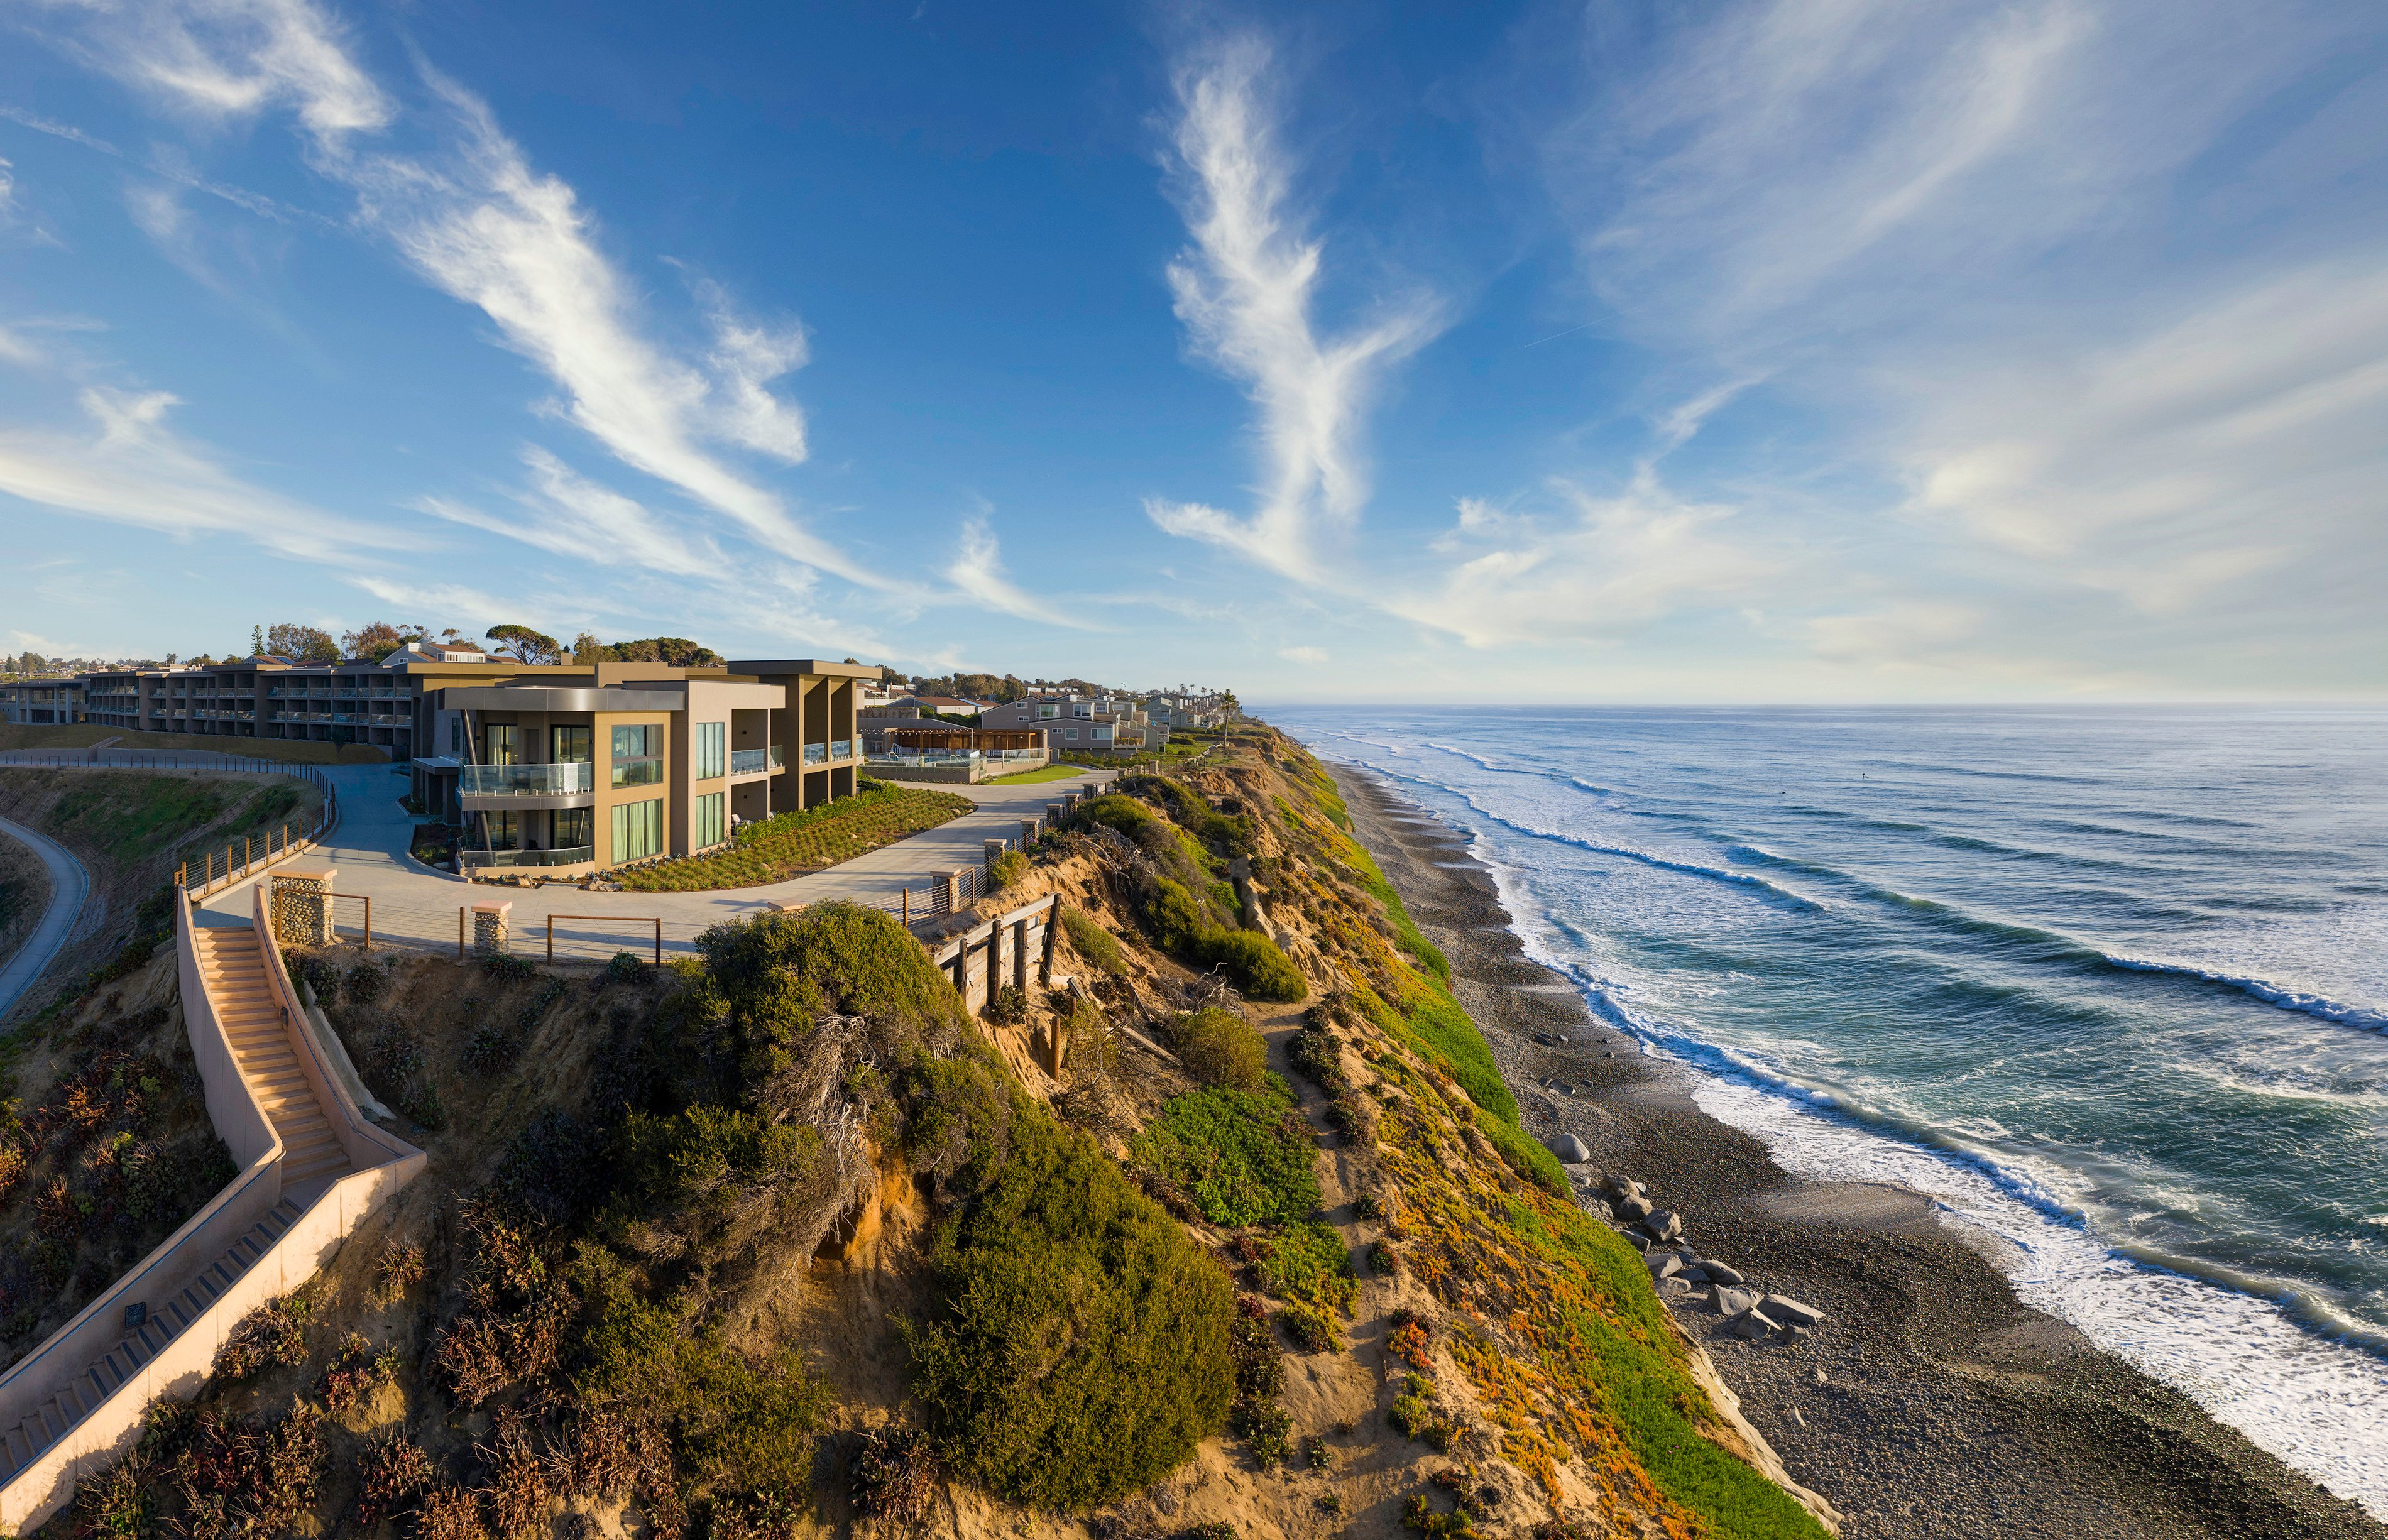 Alila Marea Beach Resort sits on the bluffs of Encinitas above the beach.